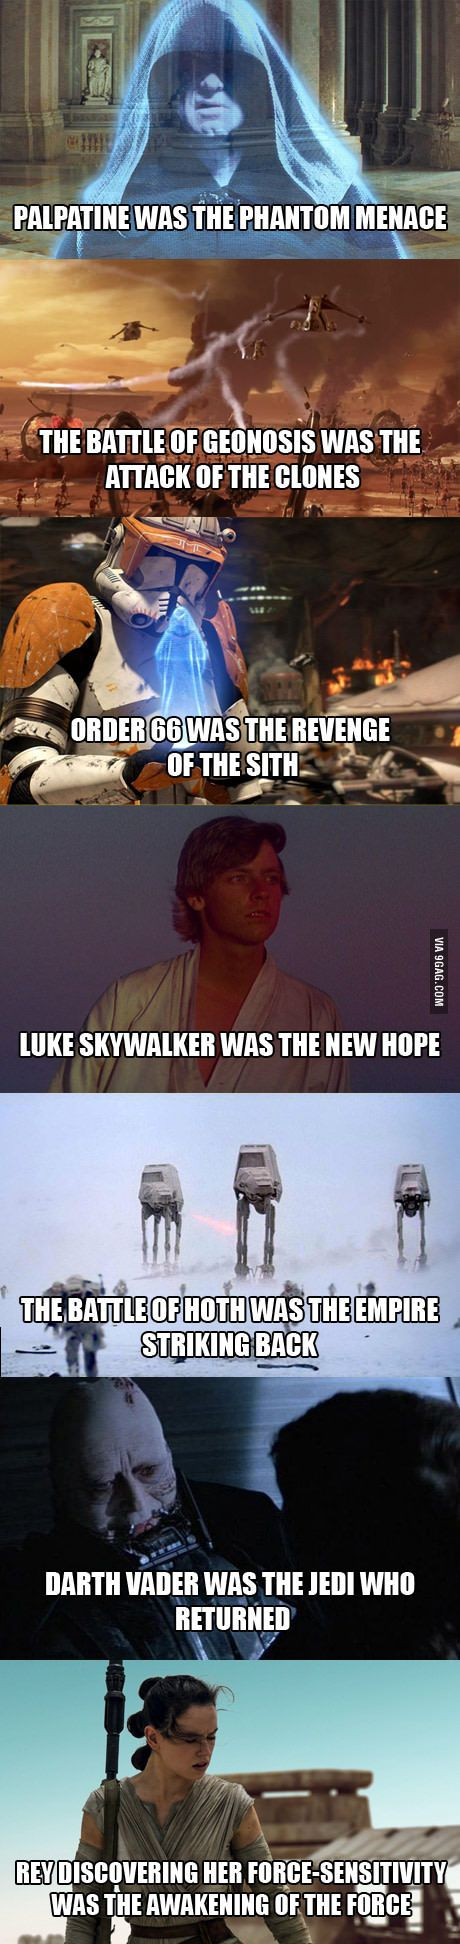 This is cool! ...except for Return of the Jedi, I always thought it was talking about Luke becoming the next Jedi.